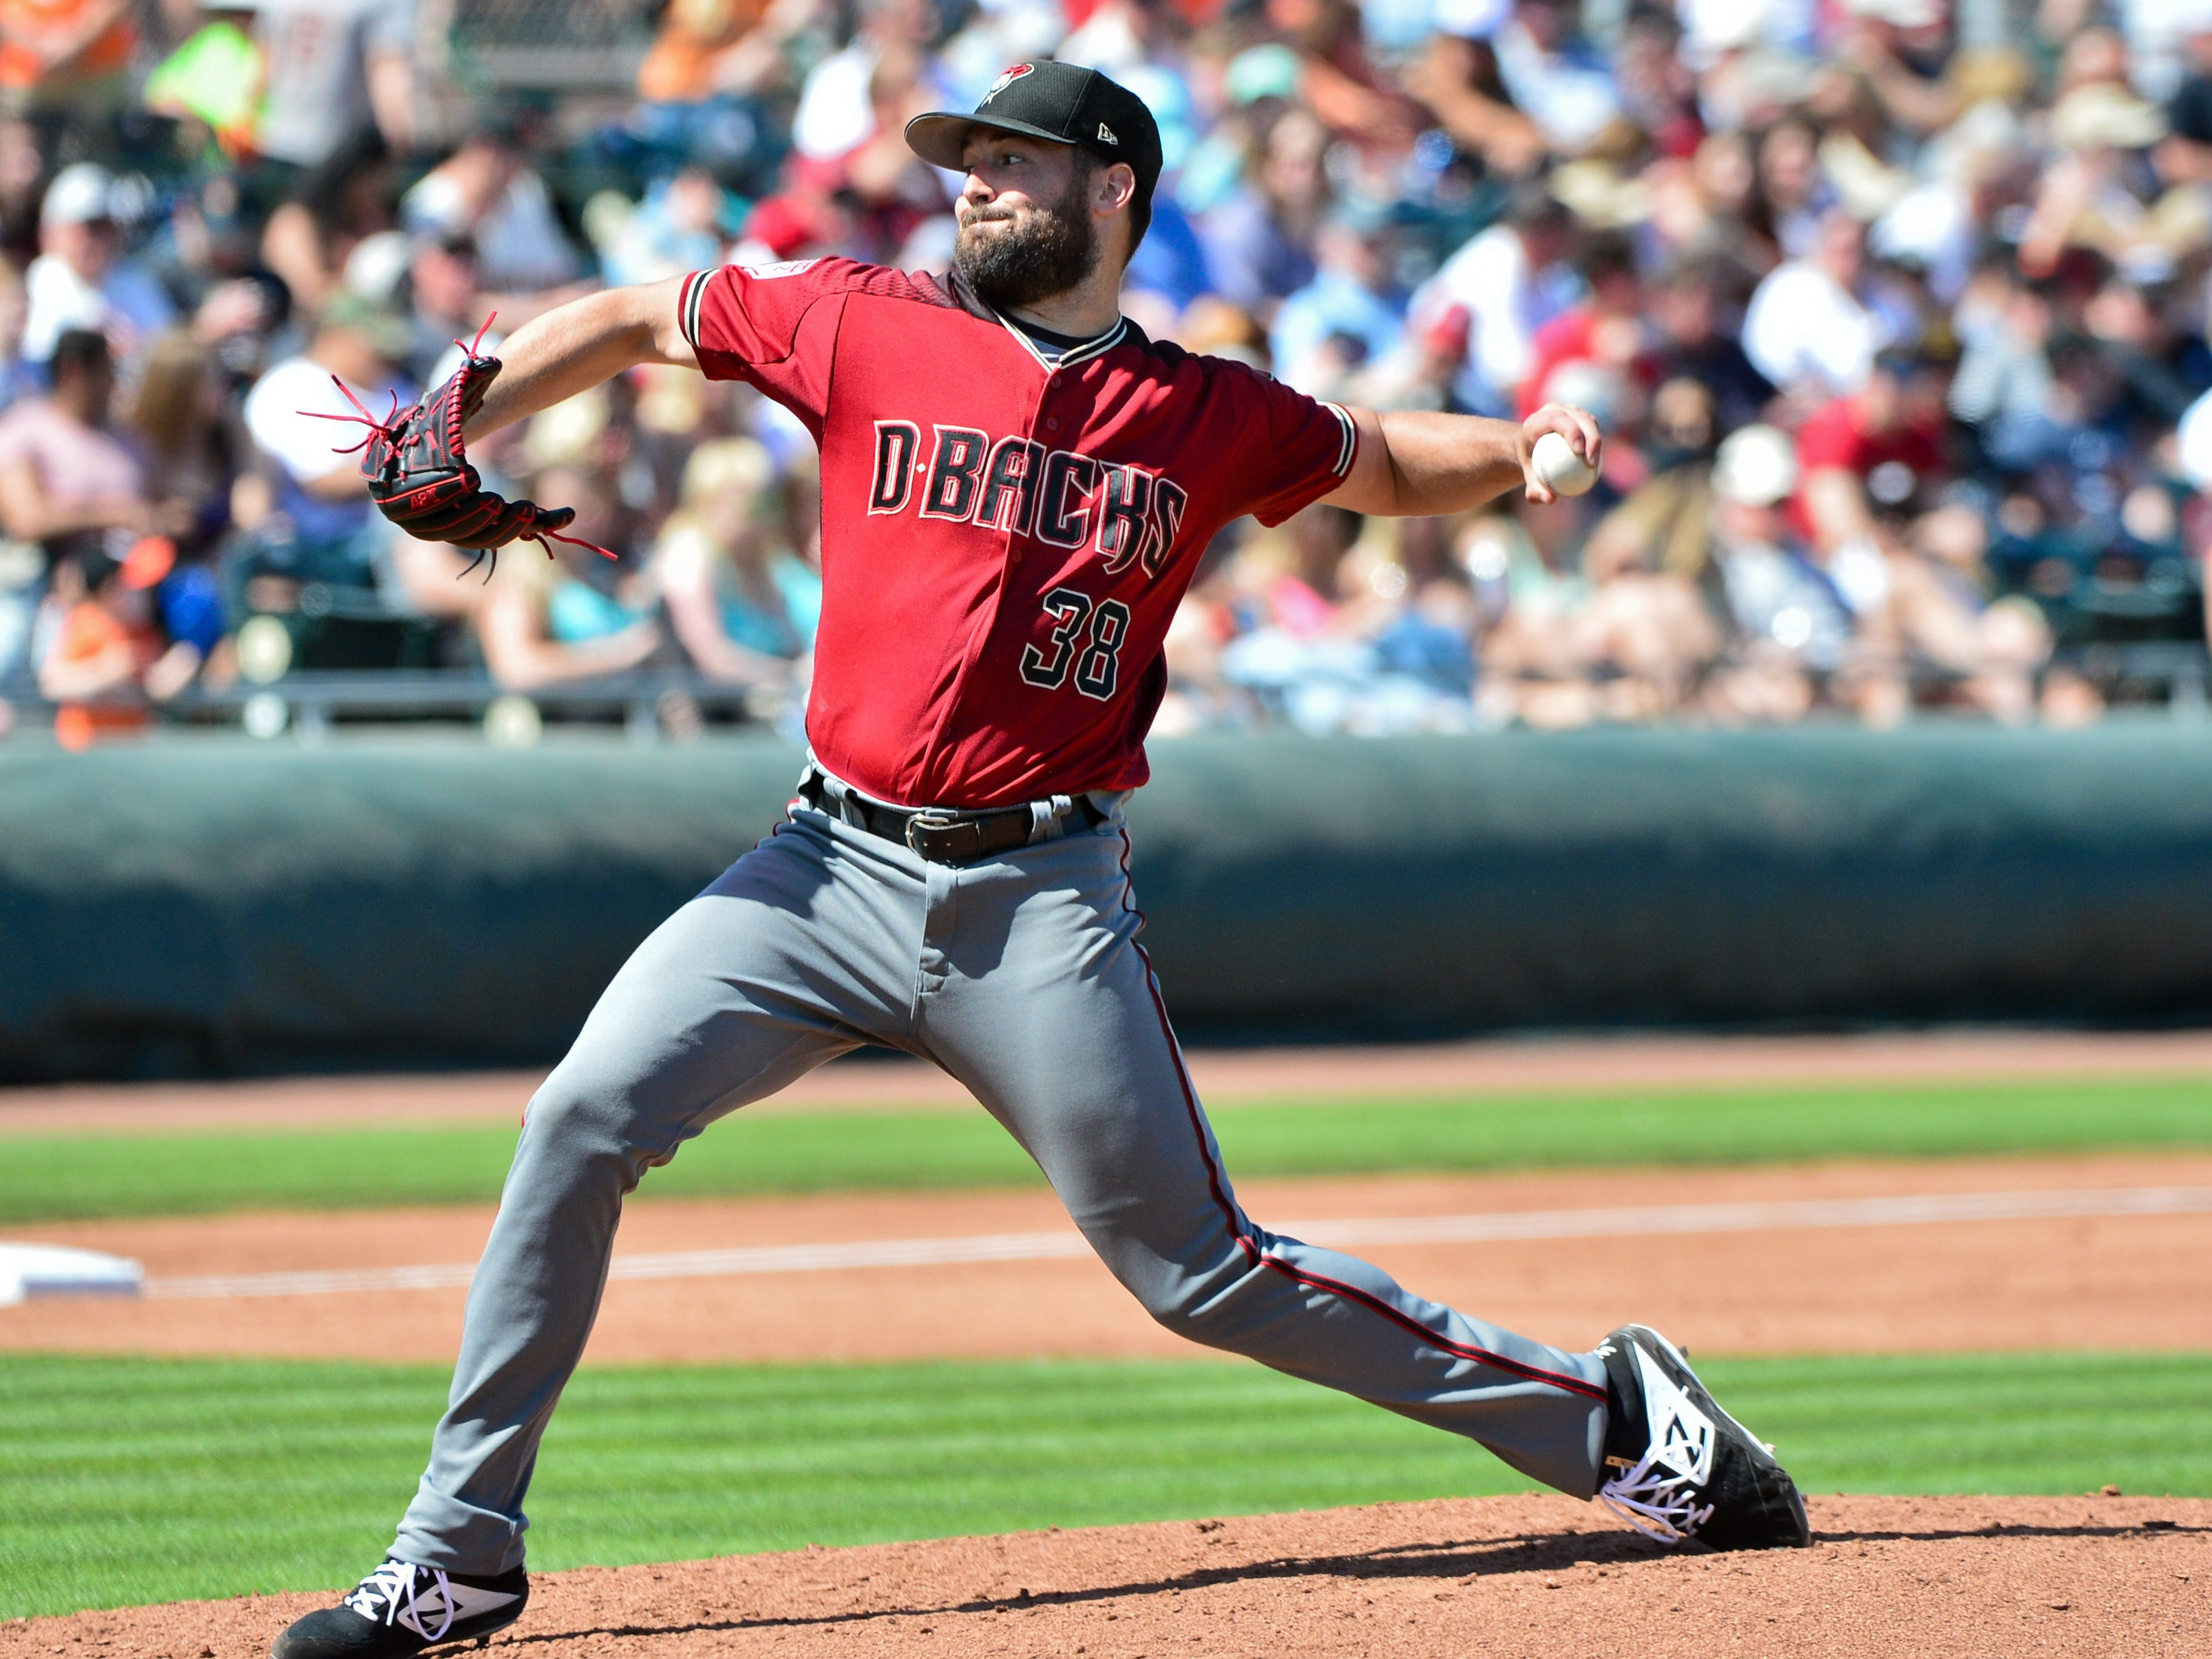 Mar 23, 2019; Scottsdale, AZ, USA; Arizona Diamondbacks starting pitcher Robbie Ray (38) throws during the third inning against the San Francisco Giants at Scottsdale Stadium.